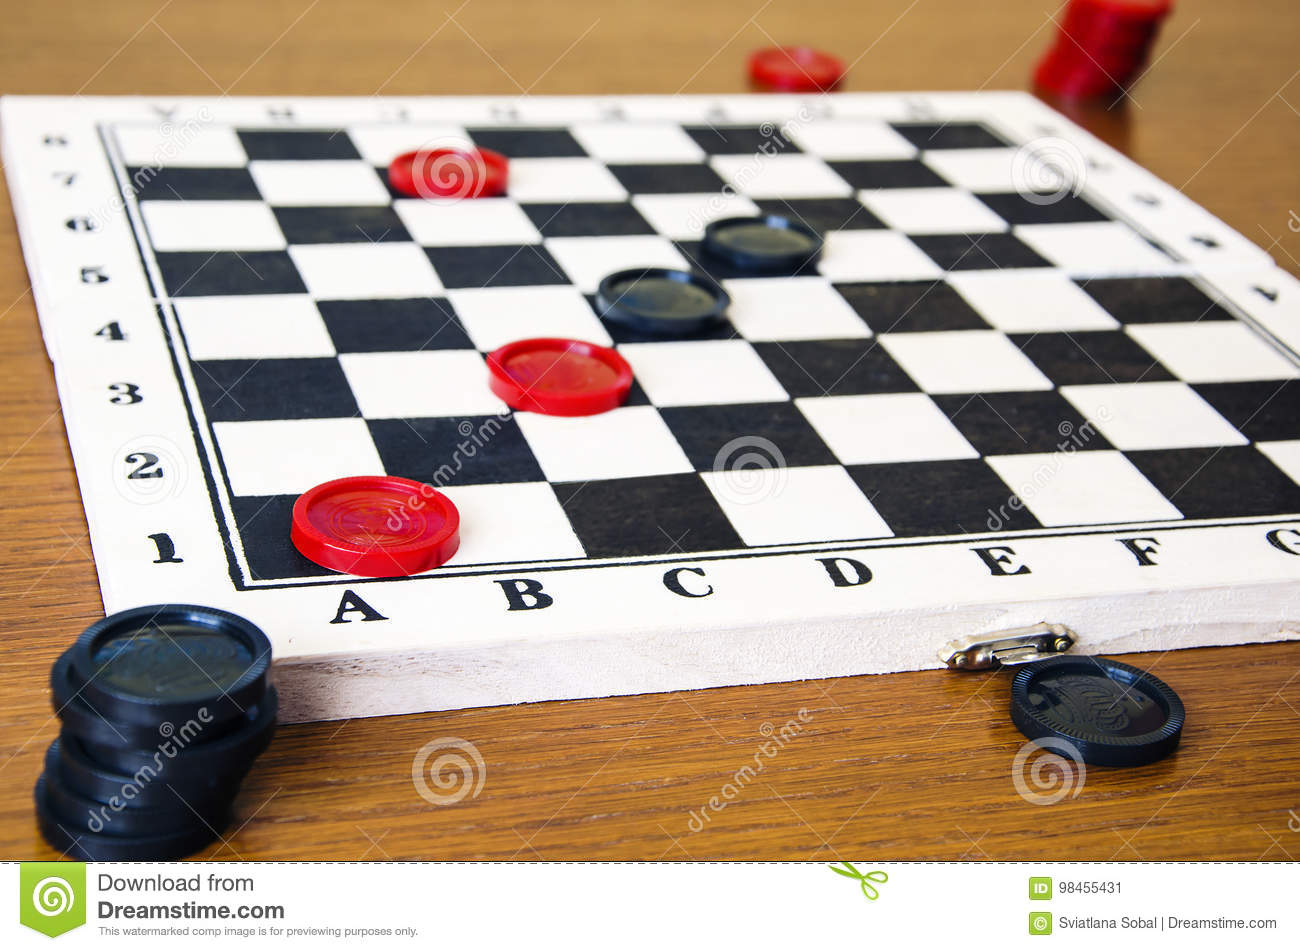 Black and red checkers on a game board